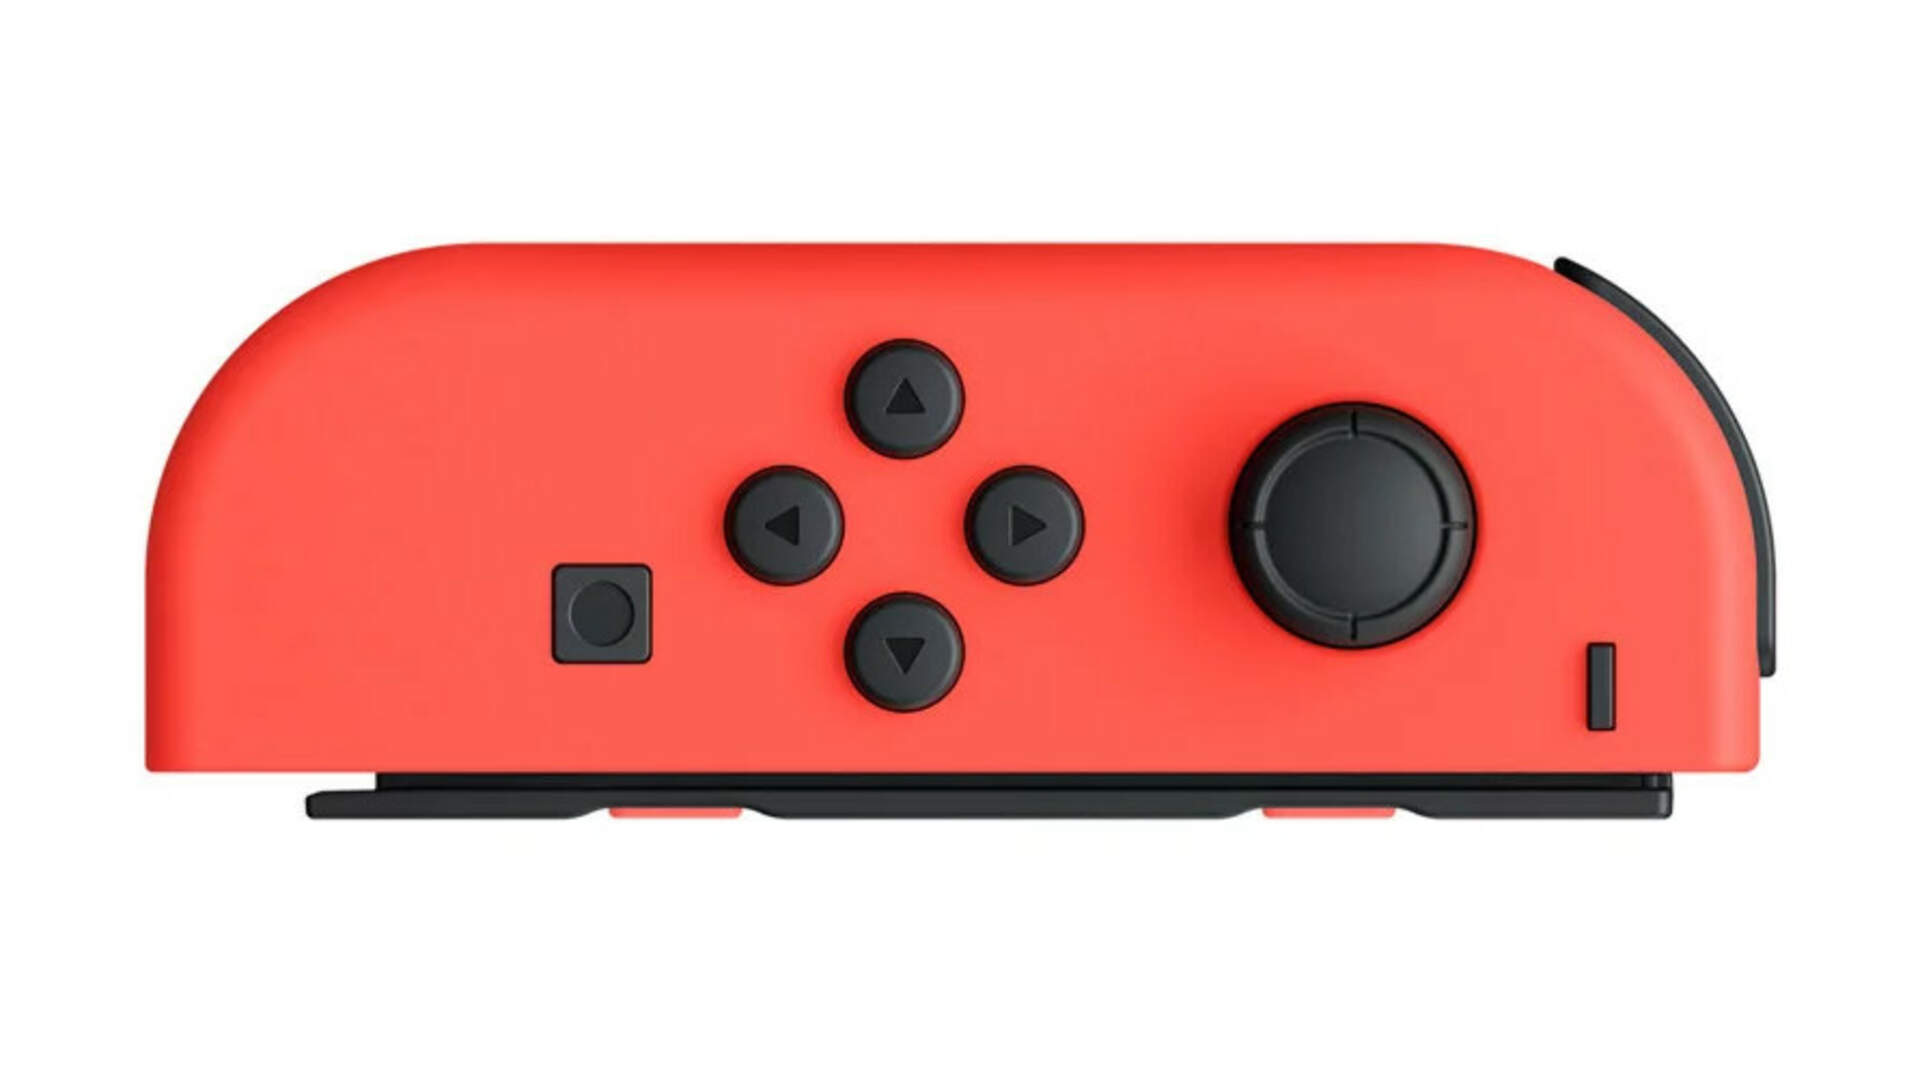 My Frustrating Journey to Find a Perfect Pair of Nintendo Switch Joy-Cons